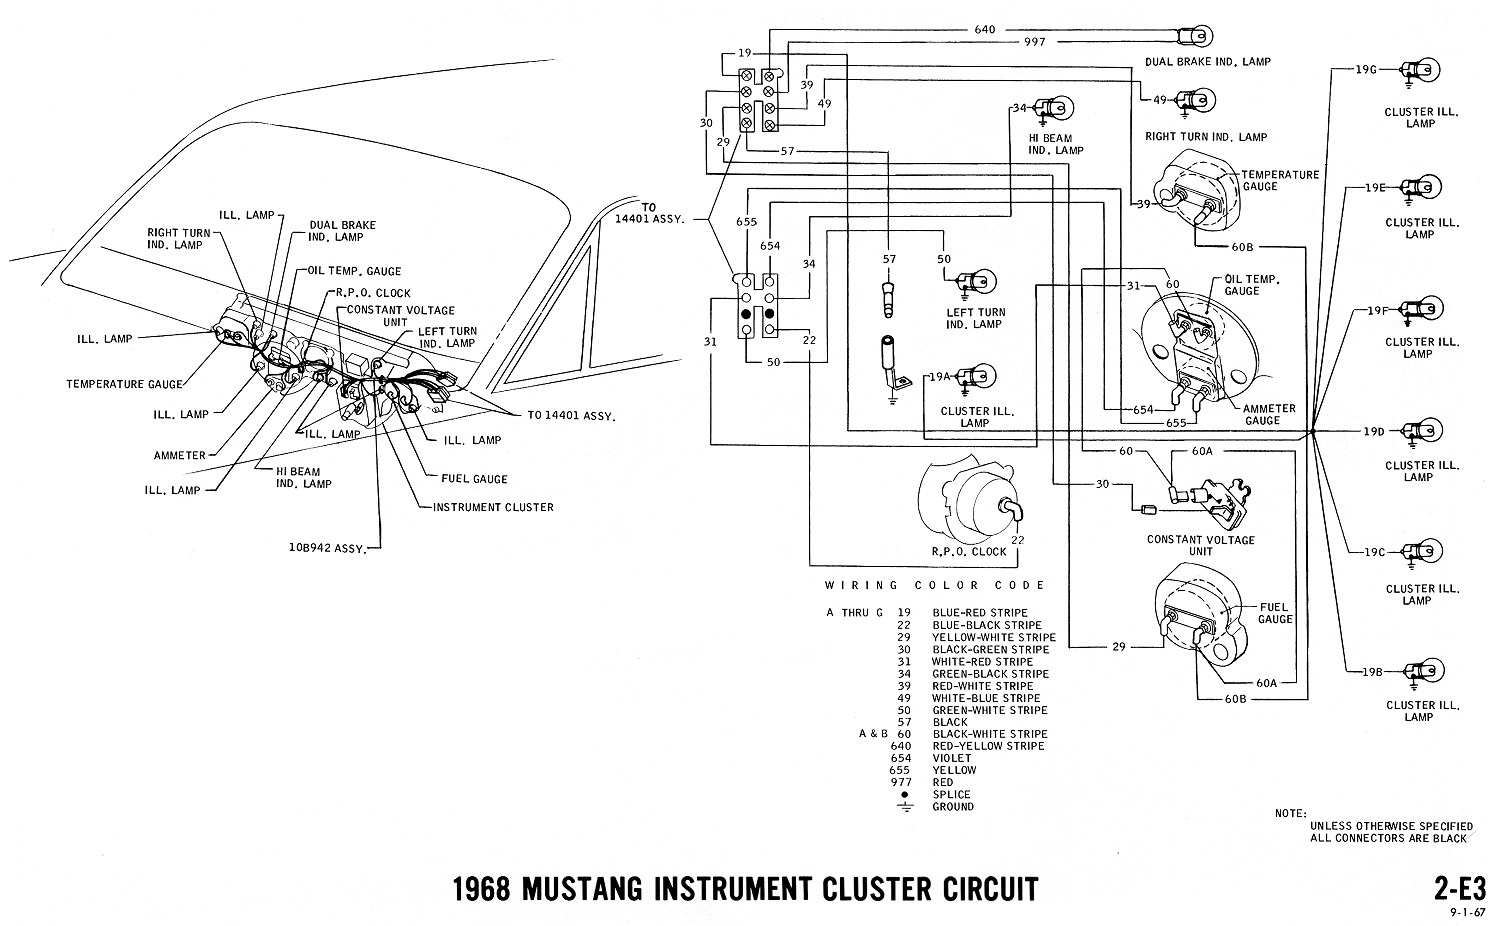 1968 Mustang Wiring Diagrams And Vacuum Schematics Average Joe As Well Diagram Of A Typical House Circuit Instruments